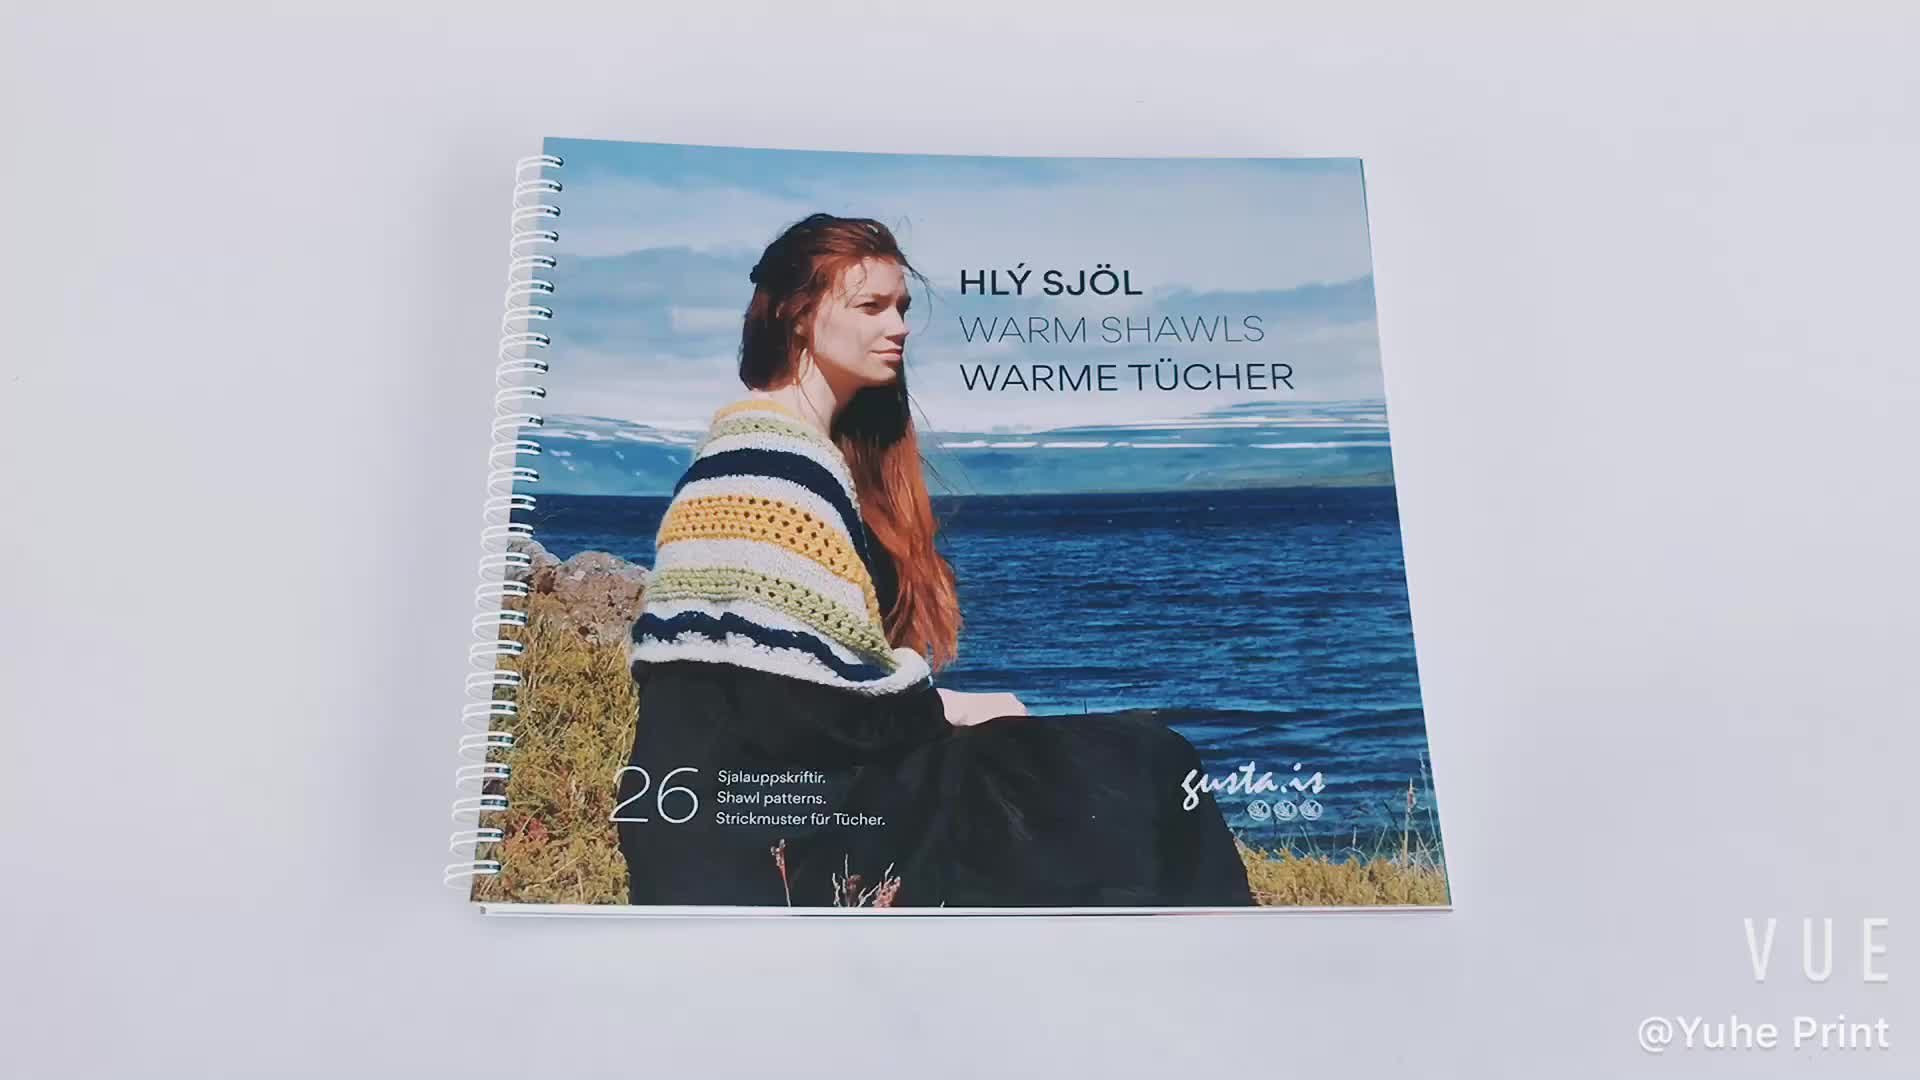 Full color Softcover booklet wire-o Binding book print from Yuhe Print